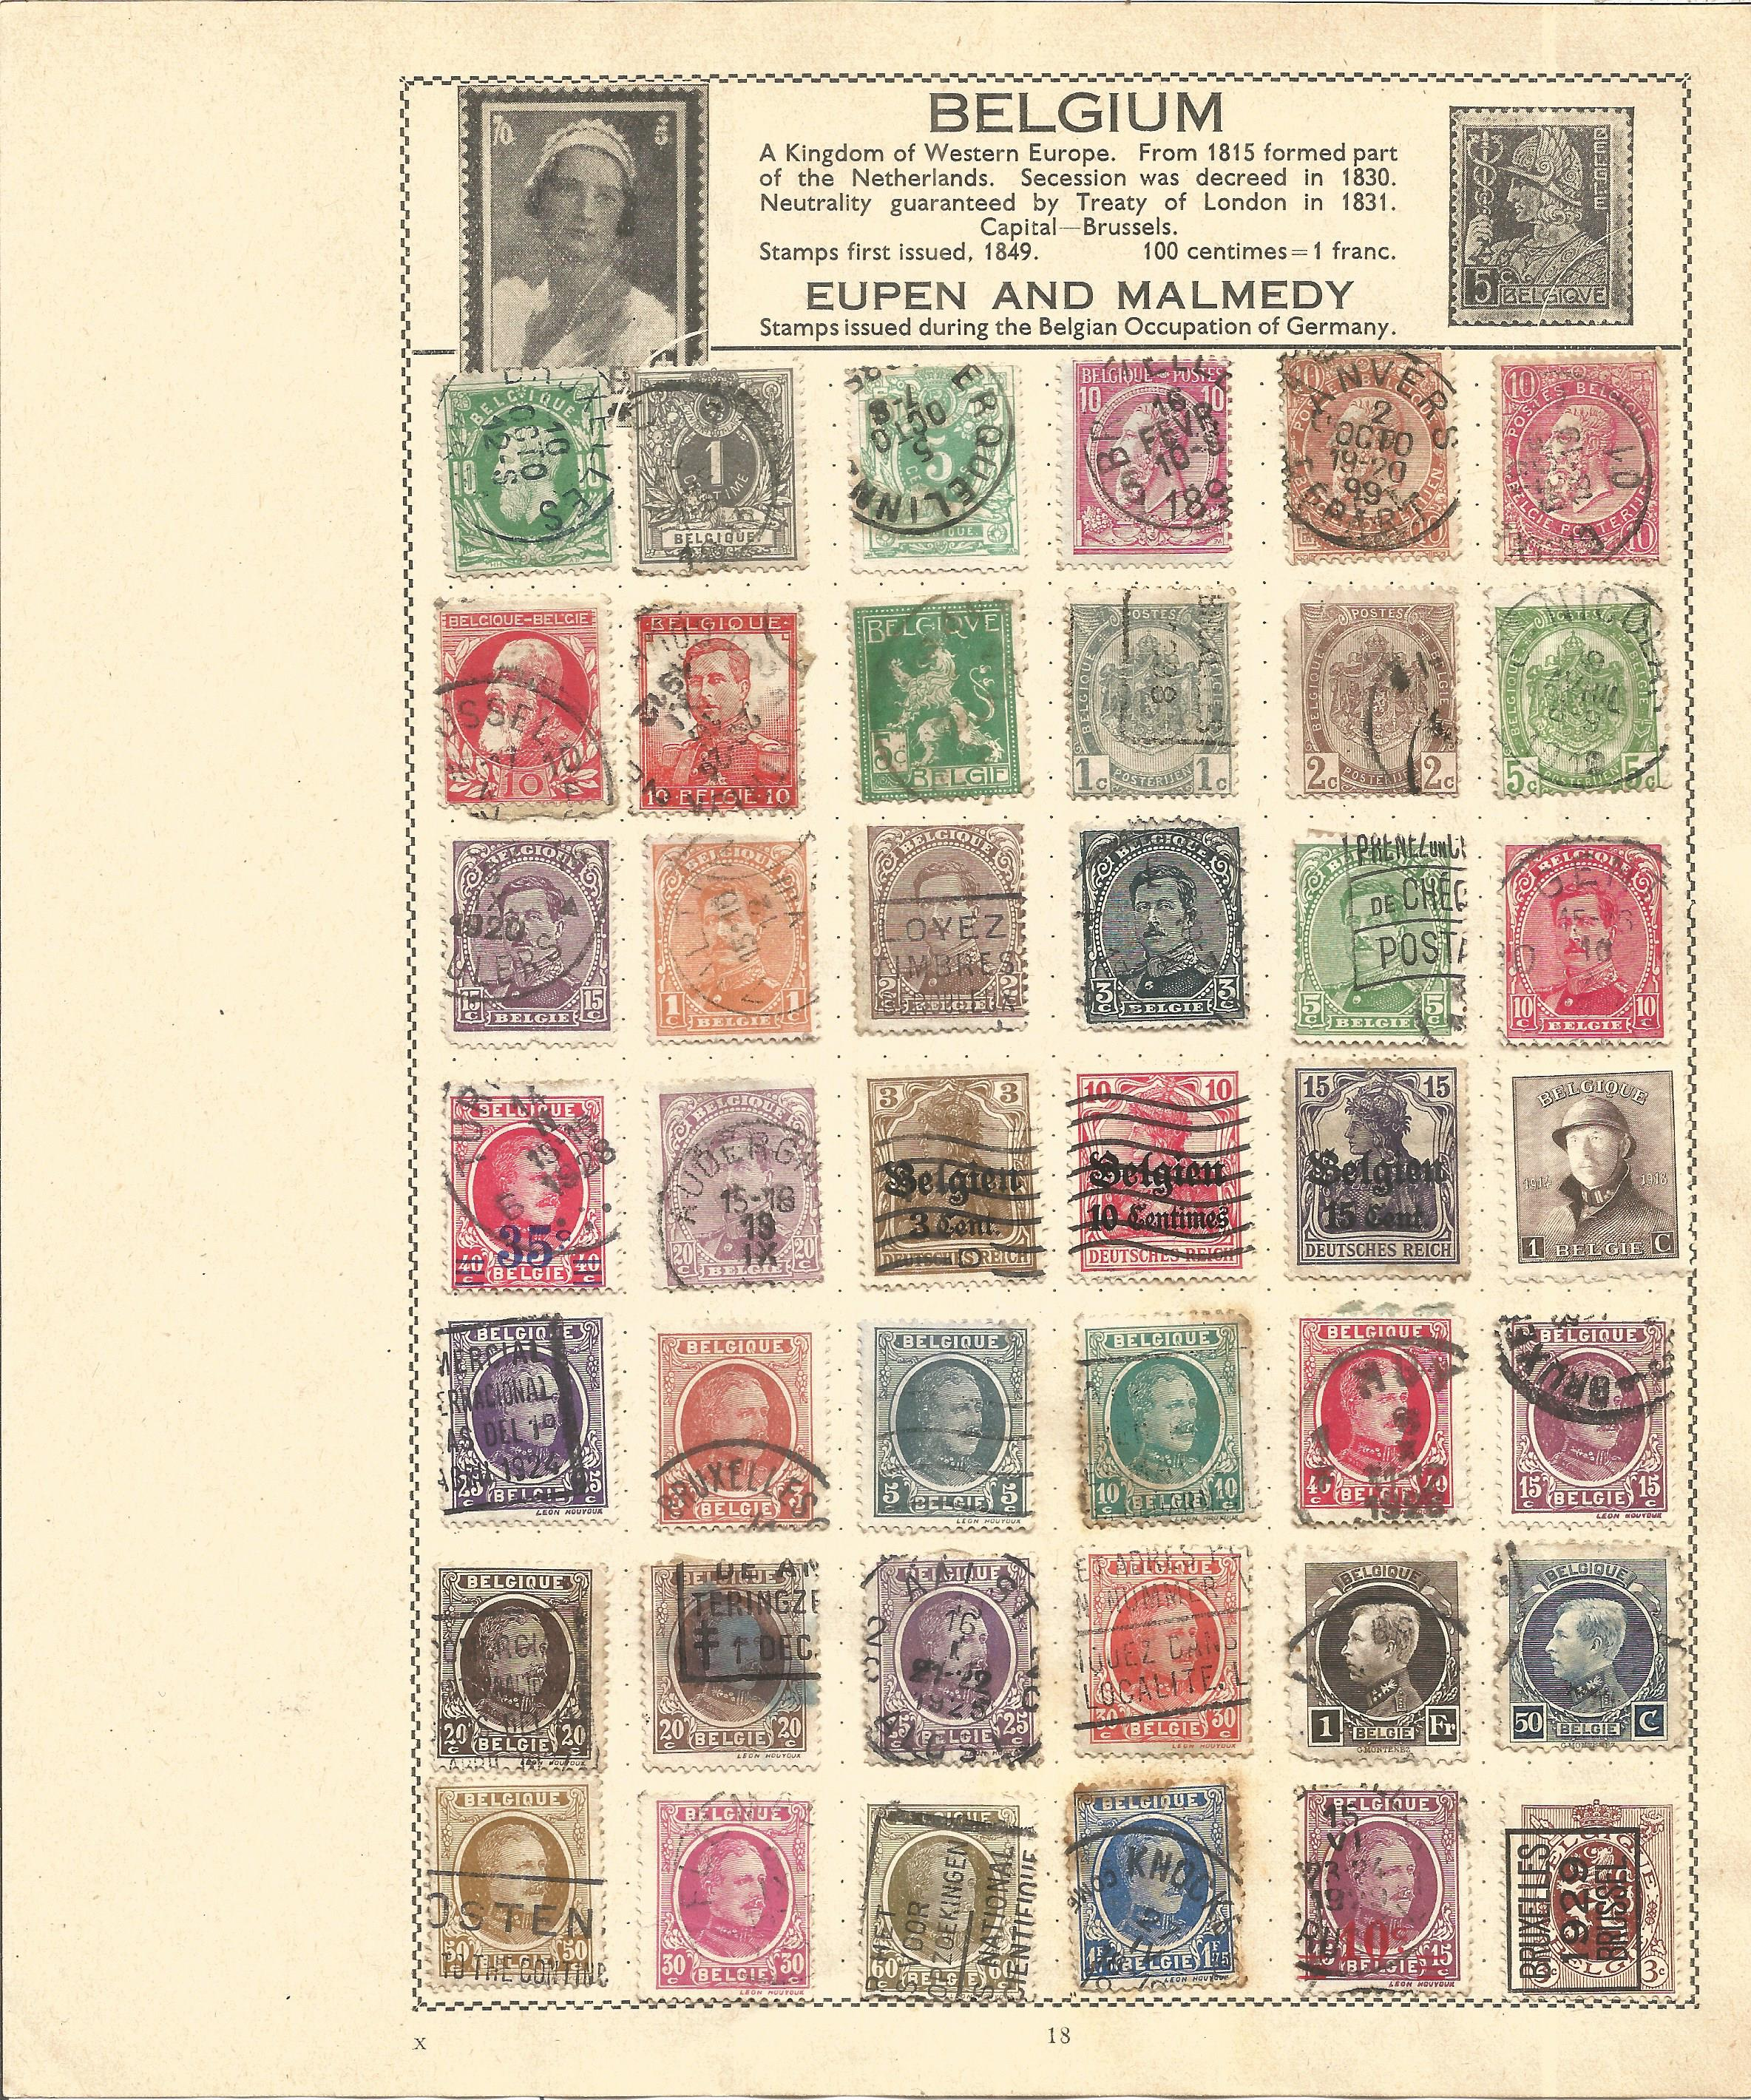 European Stamp collection 7 loose album sleeves countries include Greece and Belgium. Good - Image 2 of 3